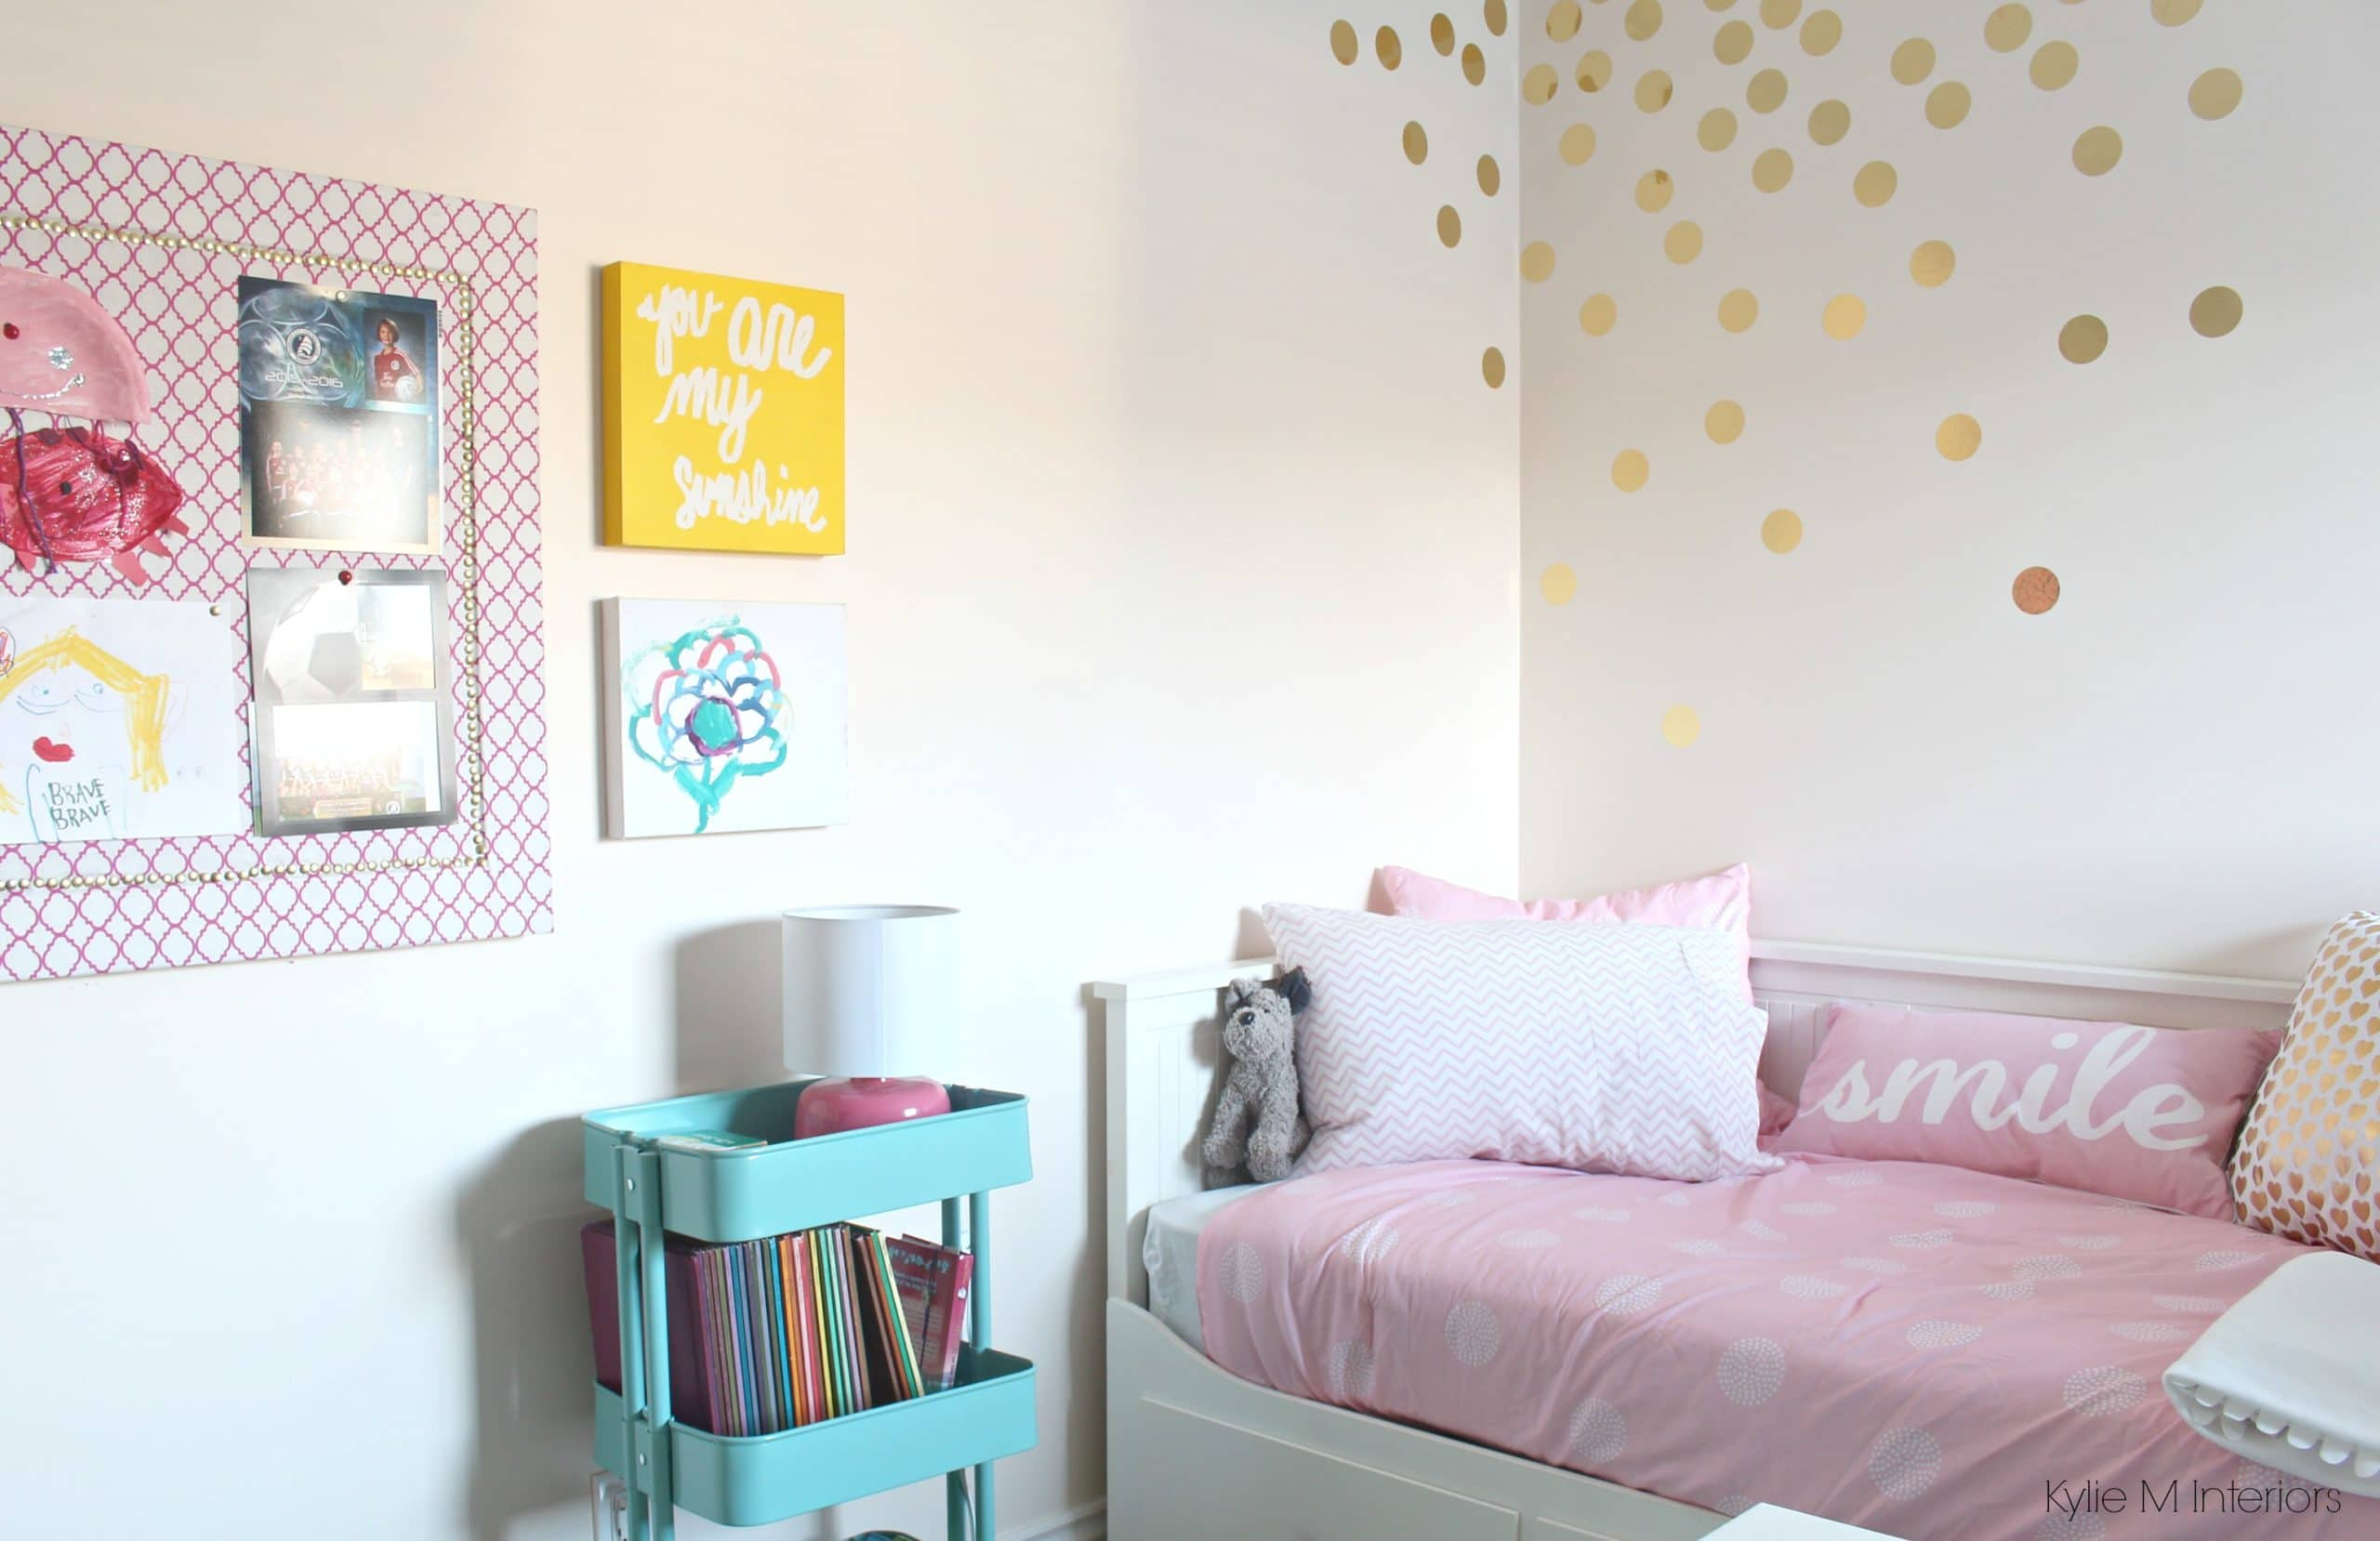 Ikea Raskog Cart In A Girls Bedroom With Pink Walls And Homemade Corkboard  With Fabric, Gold Circle Or Dot Vinyl Decals And Ikea Bed